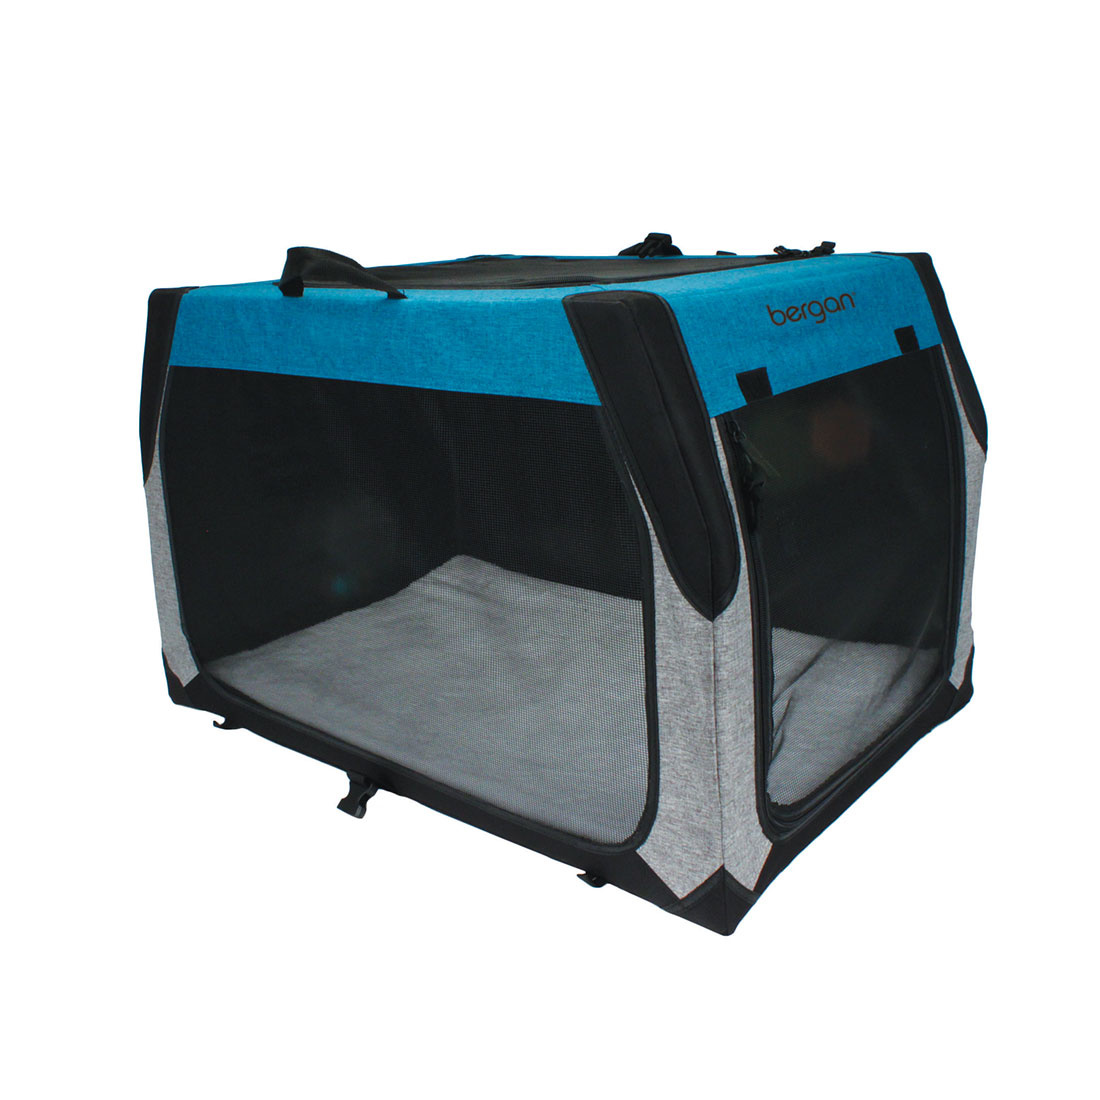 Coastal Pet Products Bergan Collapsible Soft Crate LG